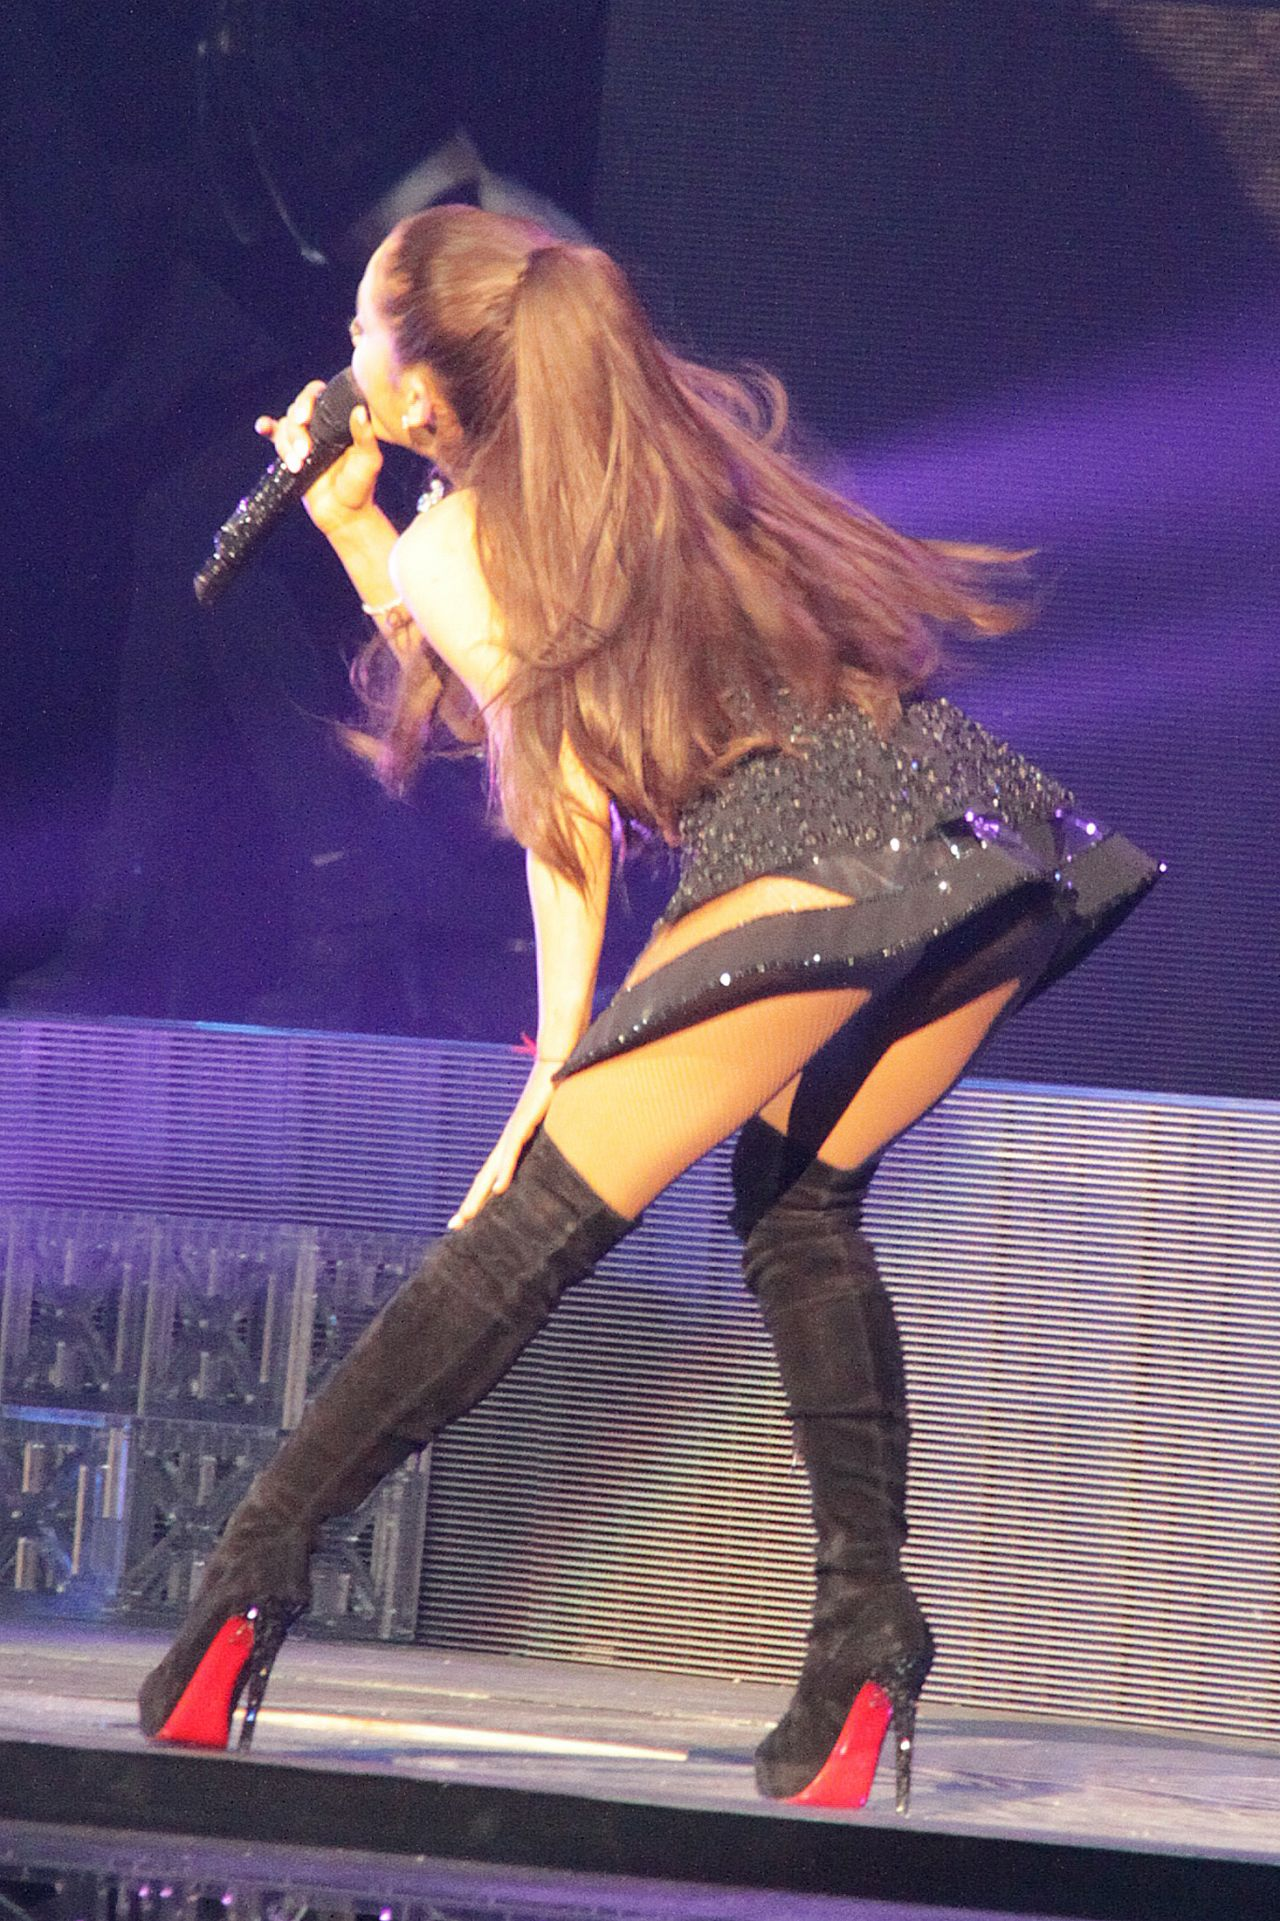 Ariana Grande Performing And Falling In Toronto March 2015